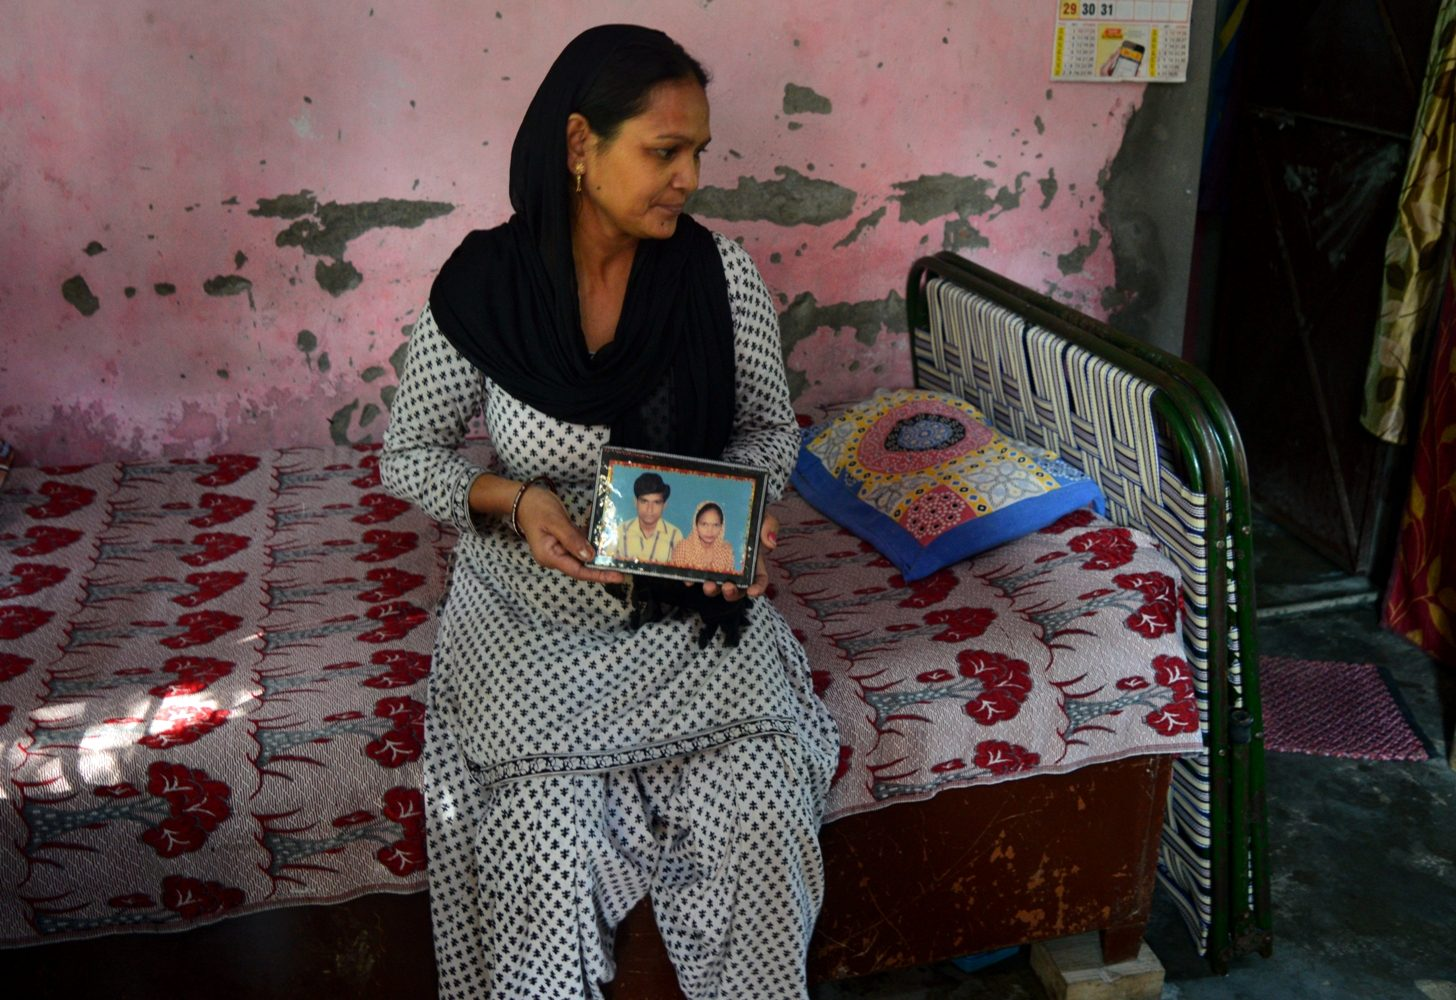 A woman in India shows a photo of her husband who died while working as a manual sewage cleaner.